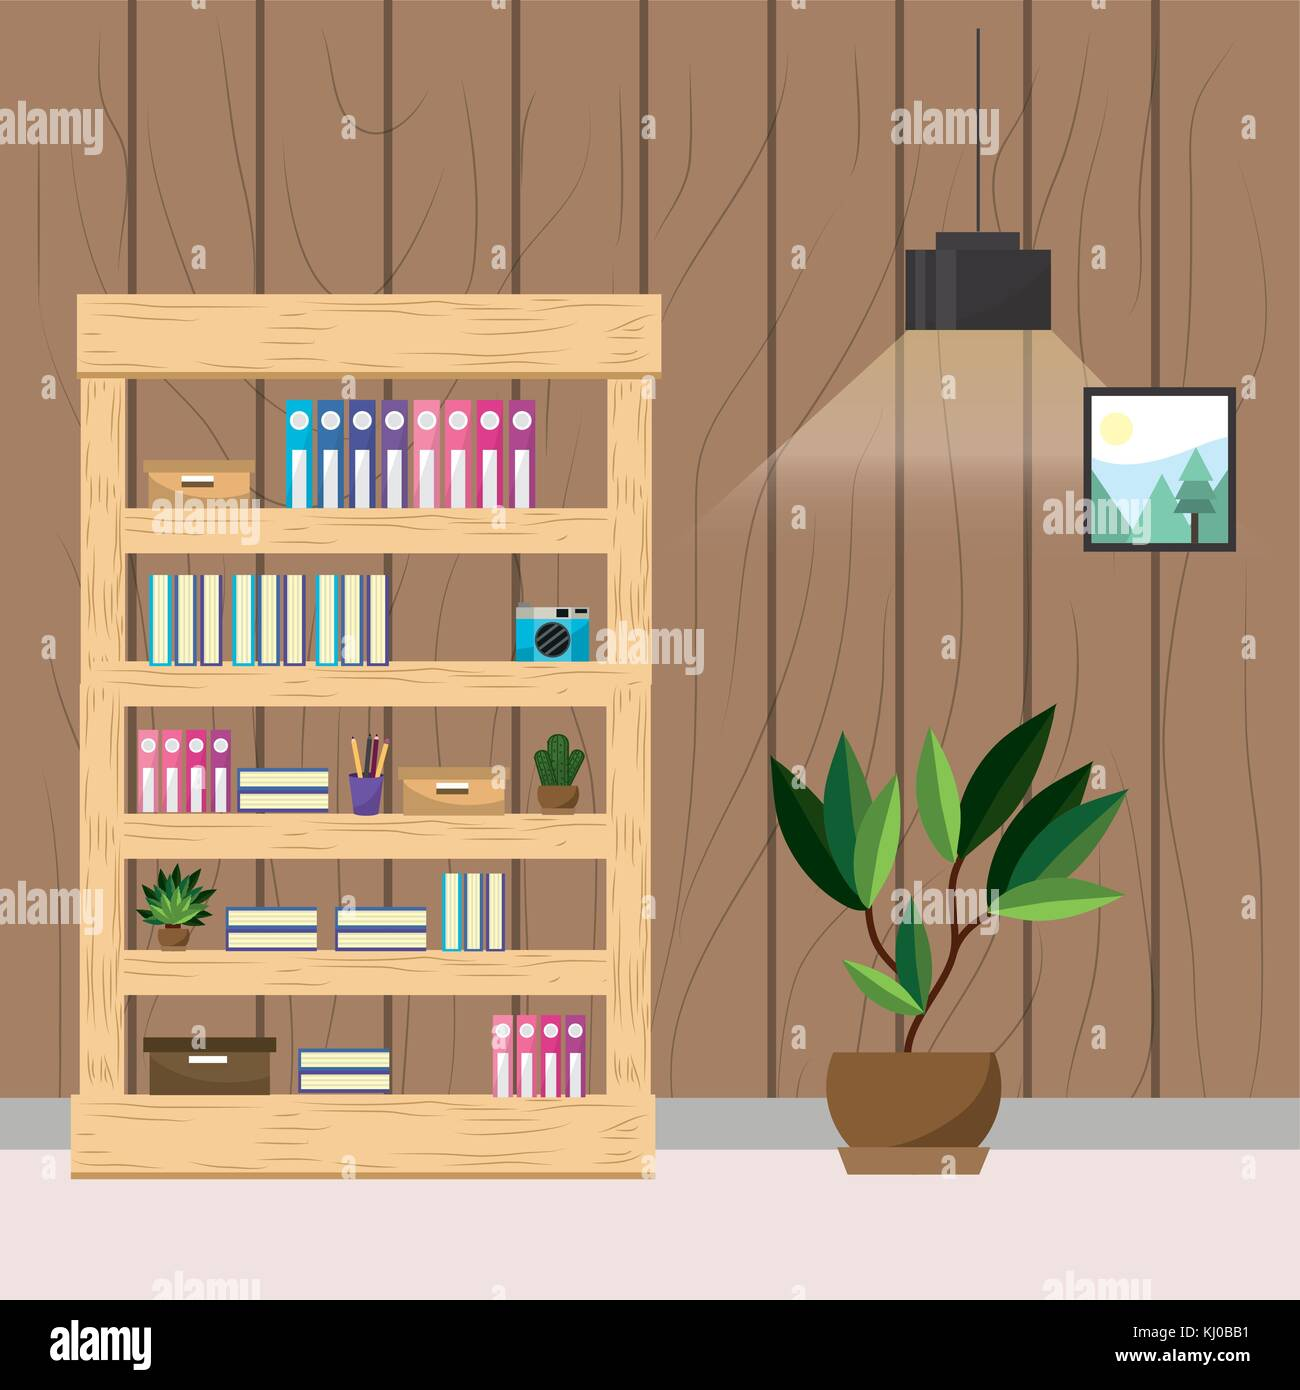 Workplace and office design Stock Vector